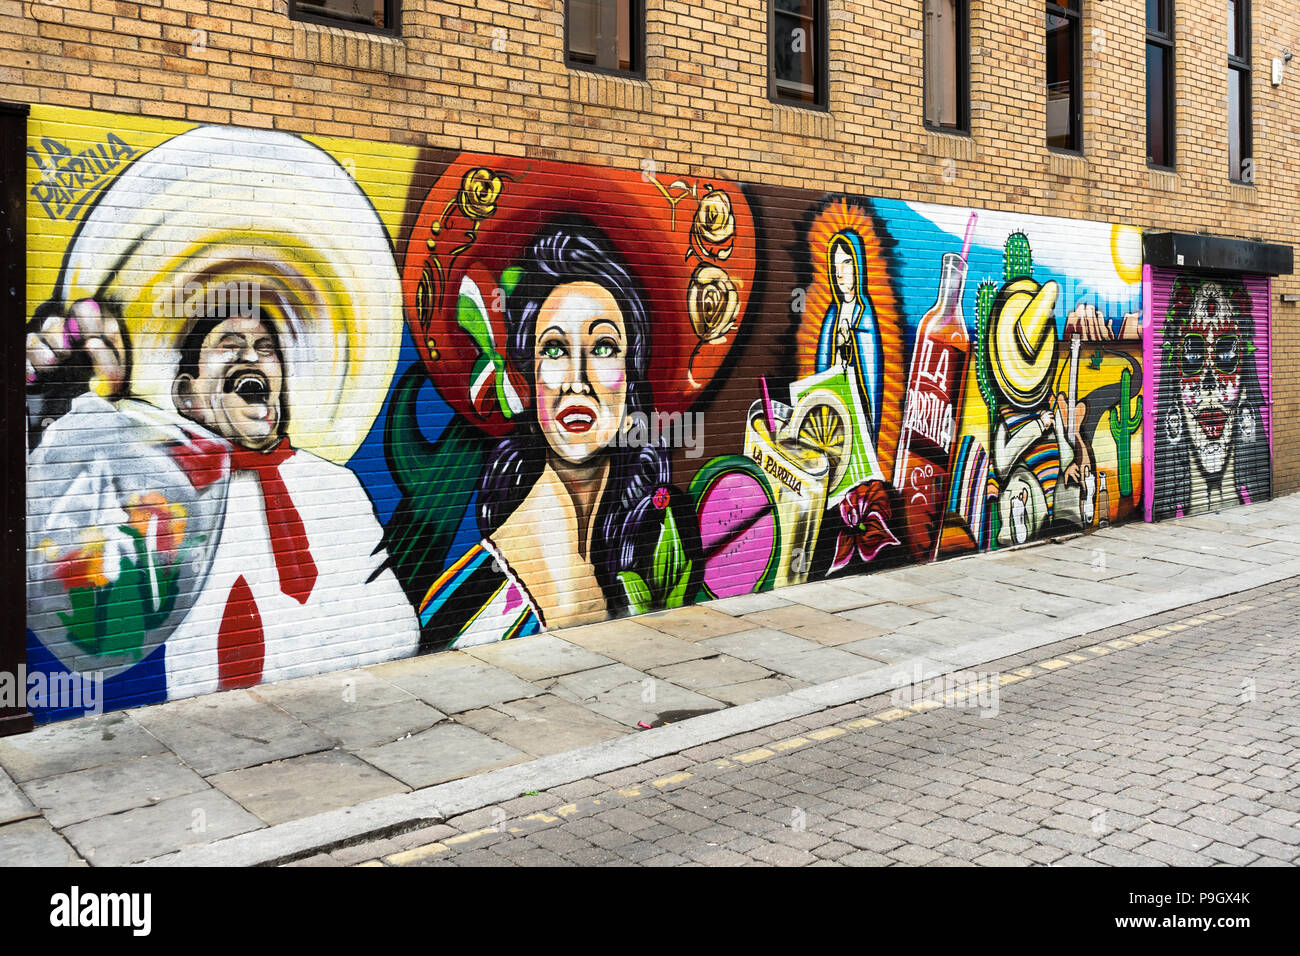 Mexican Art Work / Graffiti On The Wall, Bold Street, Liverpool, UK